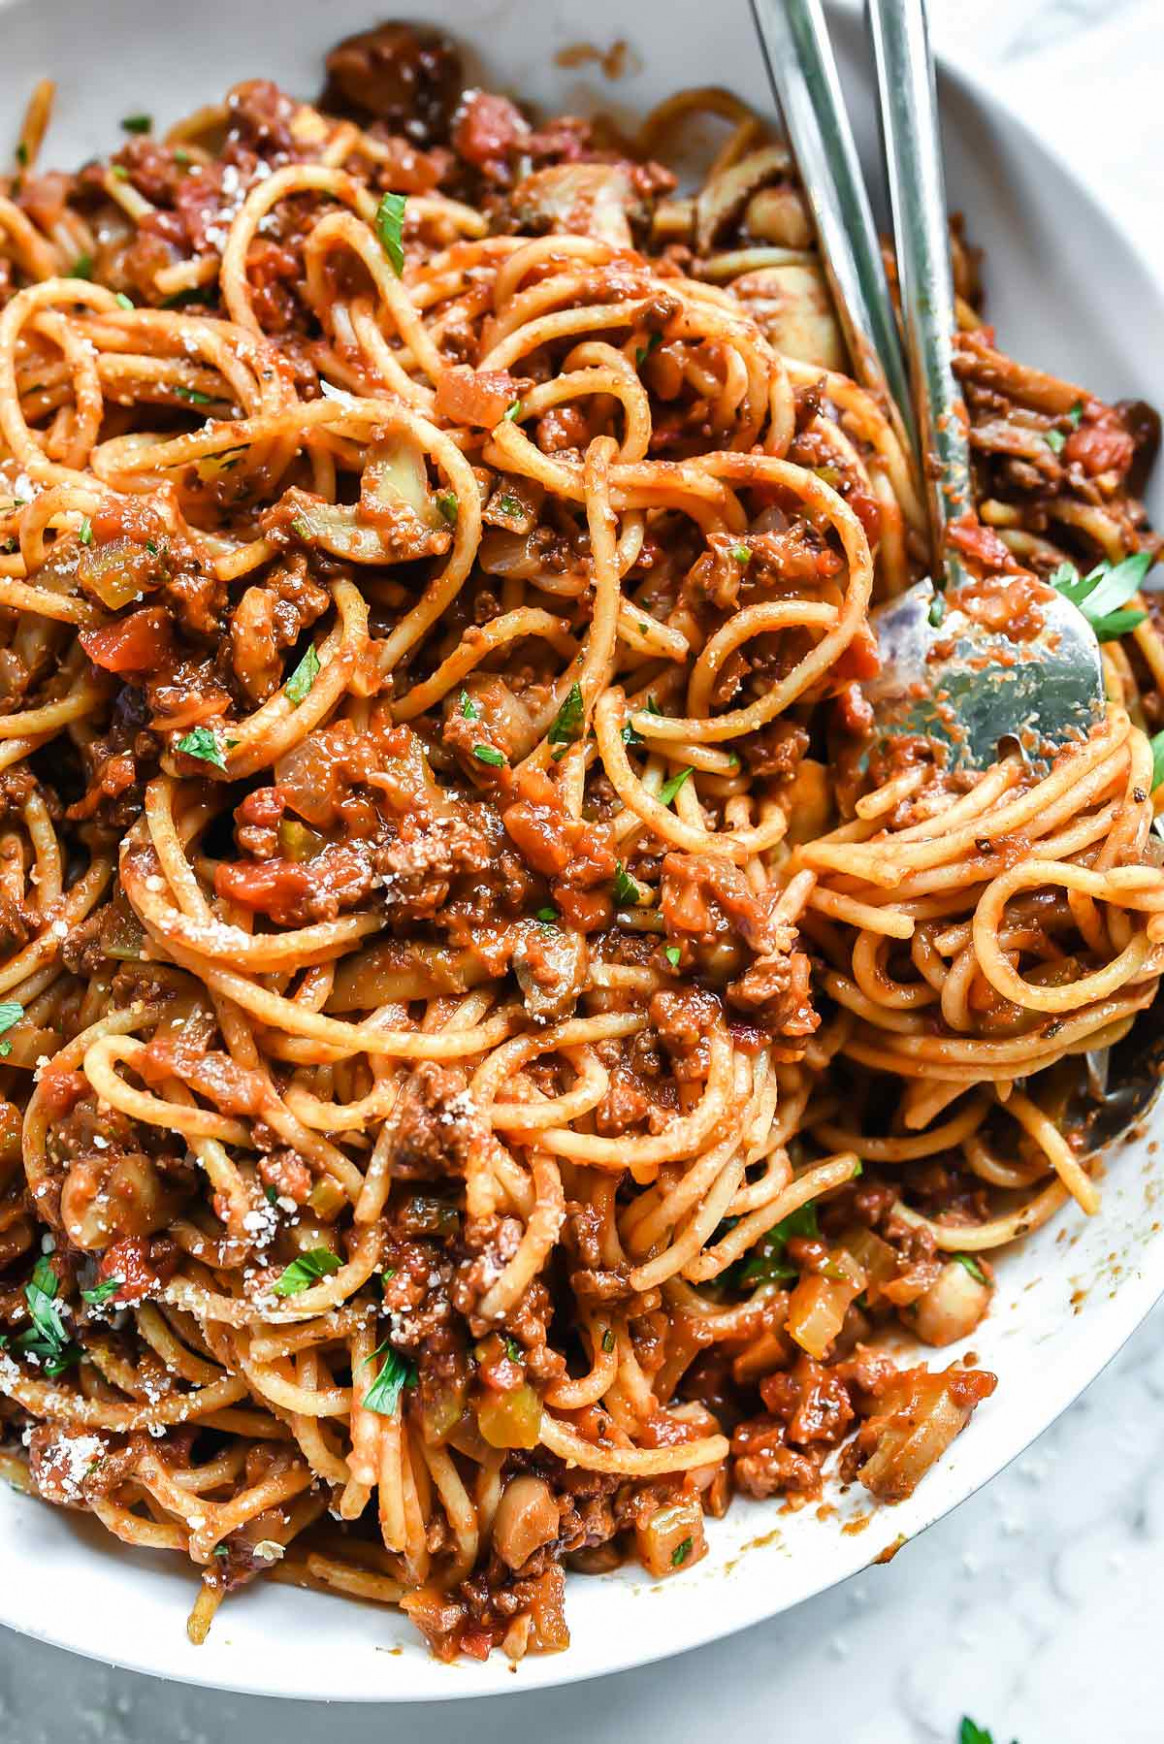 My Mom's Homemade Spaghetti and Meat Sauce | foodiecrush.com